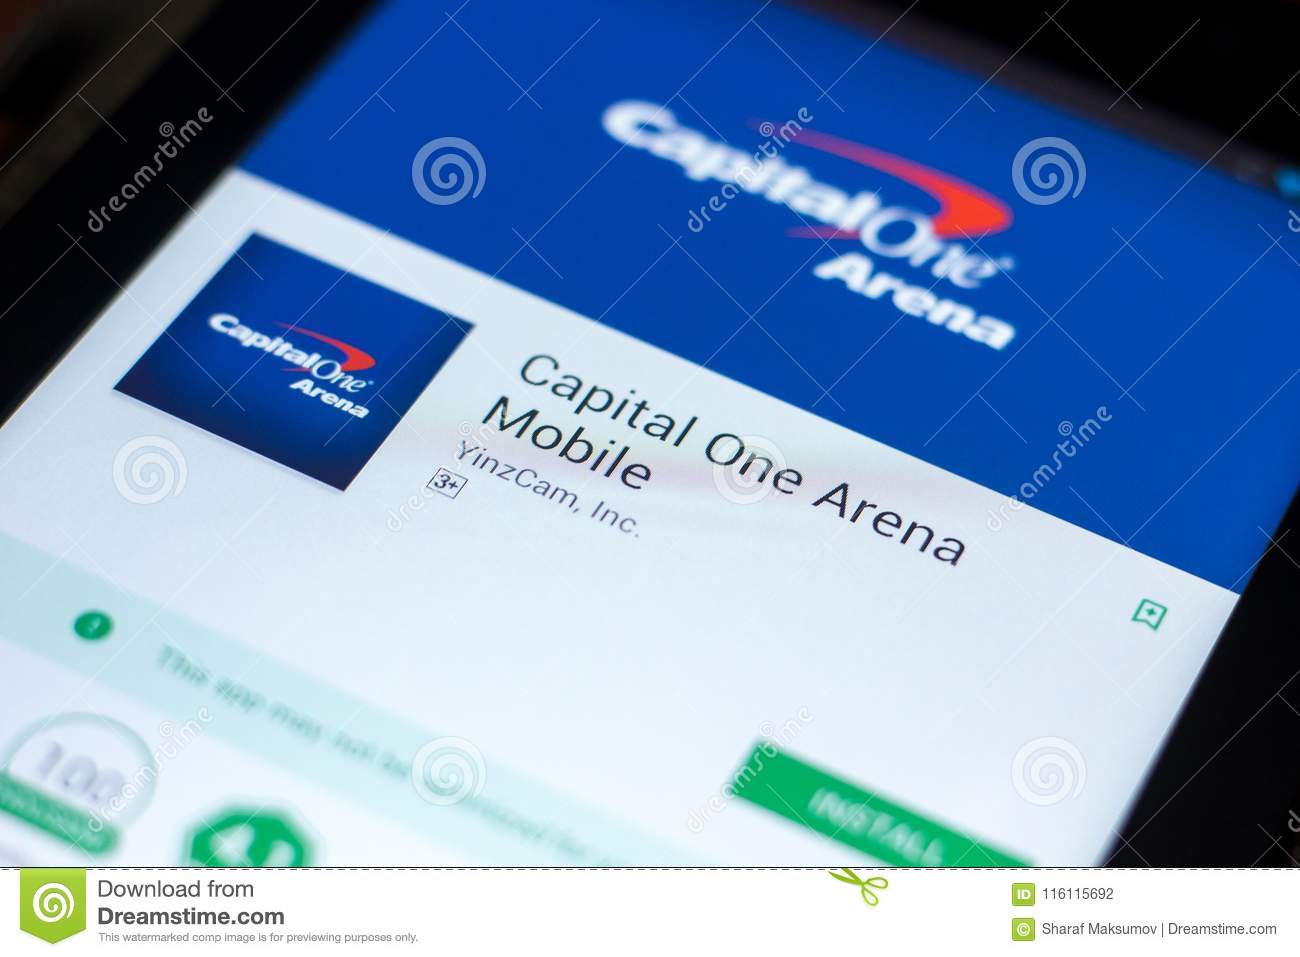 Capital one credit card number in app